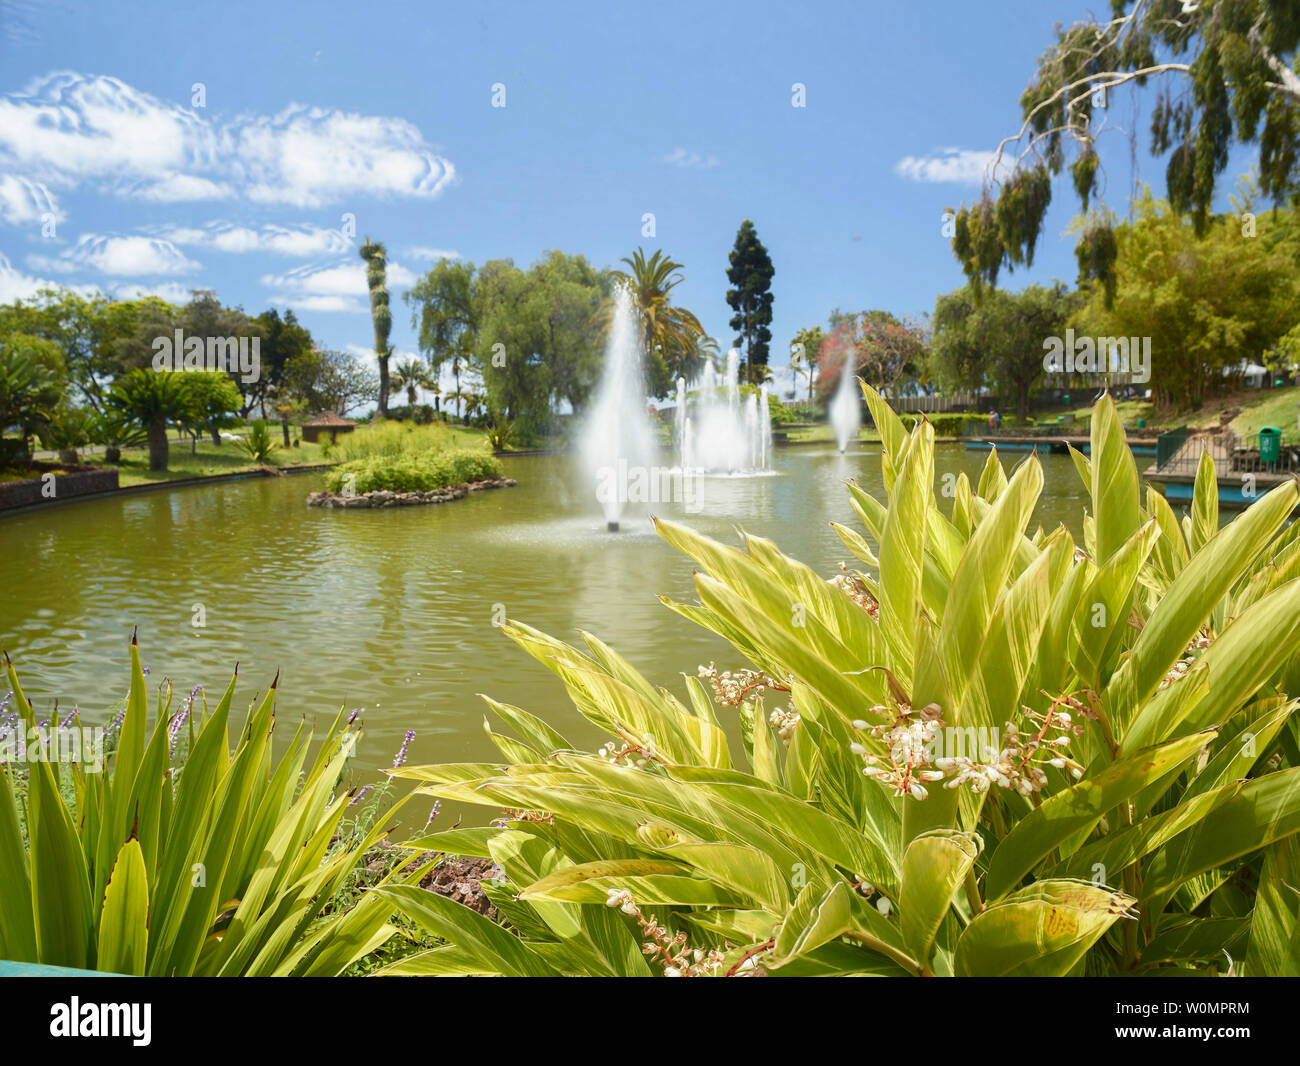 Lake and fountains in Santa Catarina Park in the sunshine, Funchal, Madeira, Portugal - Stock Image